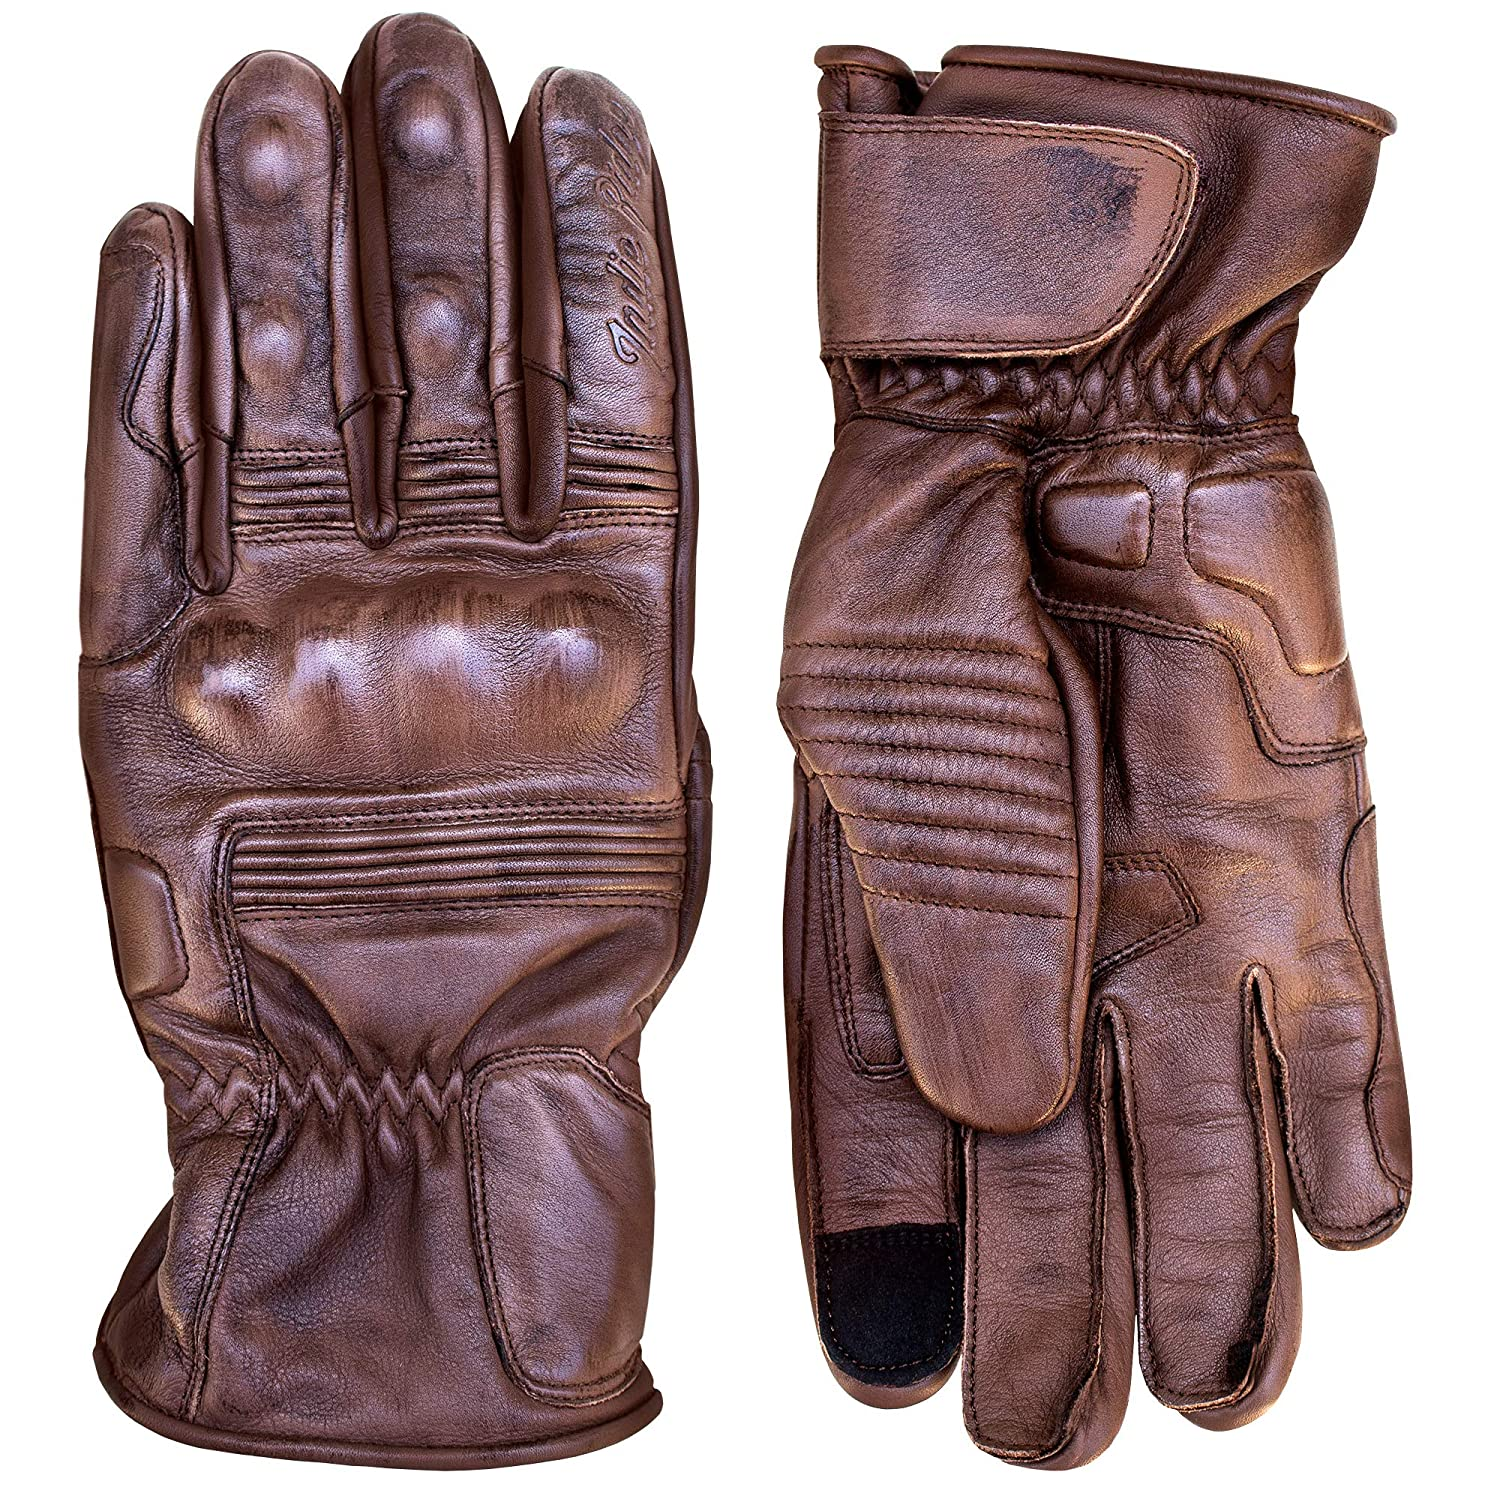 Premium Leather Motorcycle Gloves (Brown) Cool, Comfortable Riding Protection, Cafe Racer, Full Gauntlet (Large) Indie Ridge G-03